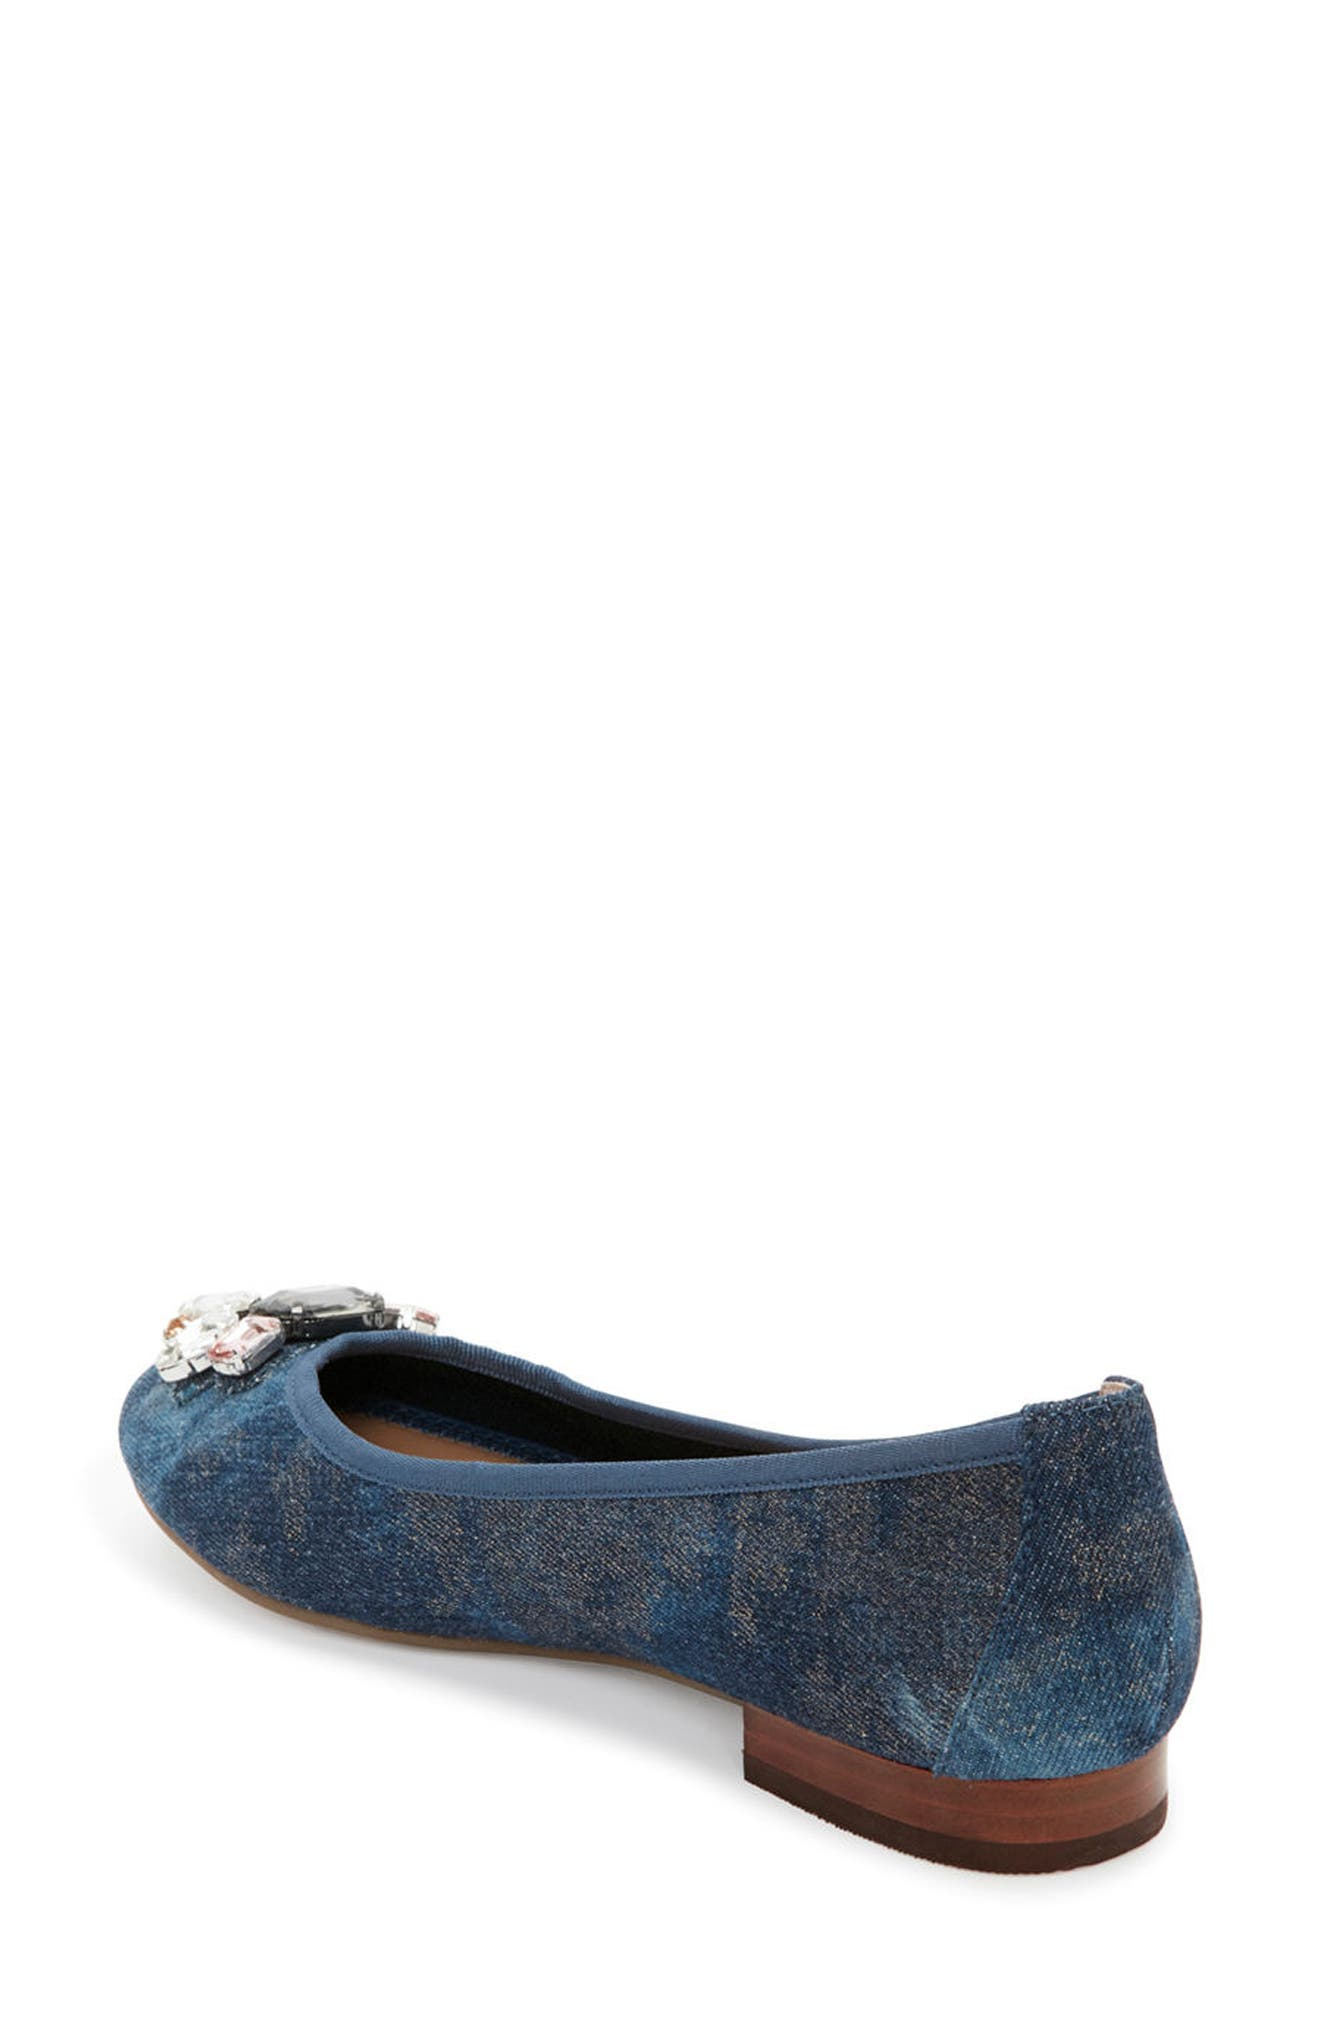 Sapphire Crystal Embellished Flat,                             Alternate thumbnail 2, color,                             Blue Champagne Denim Fabric